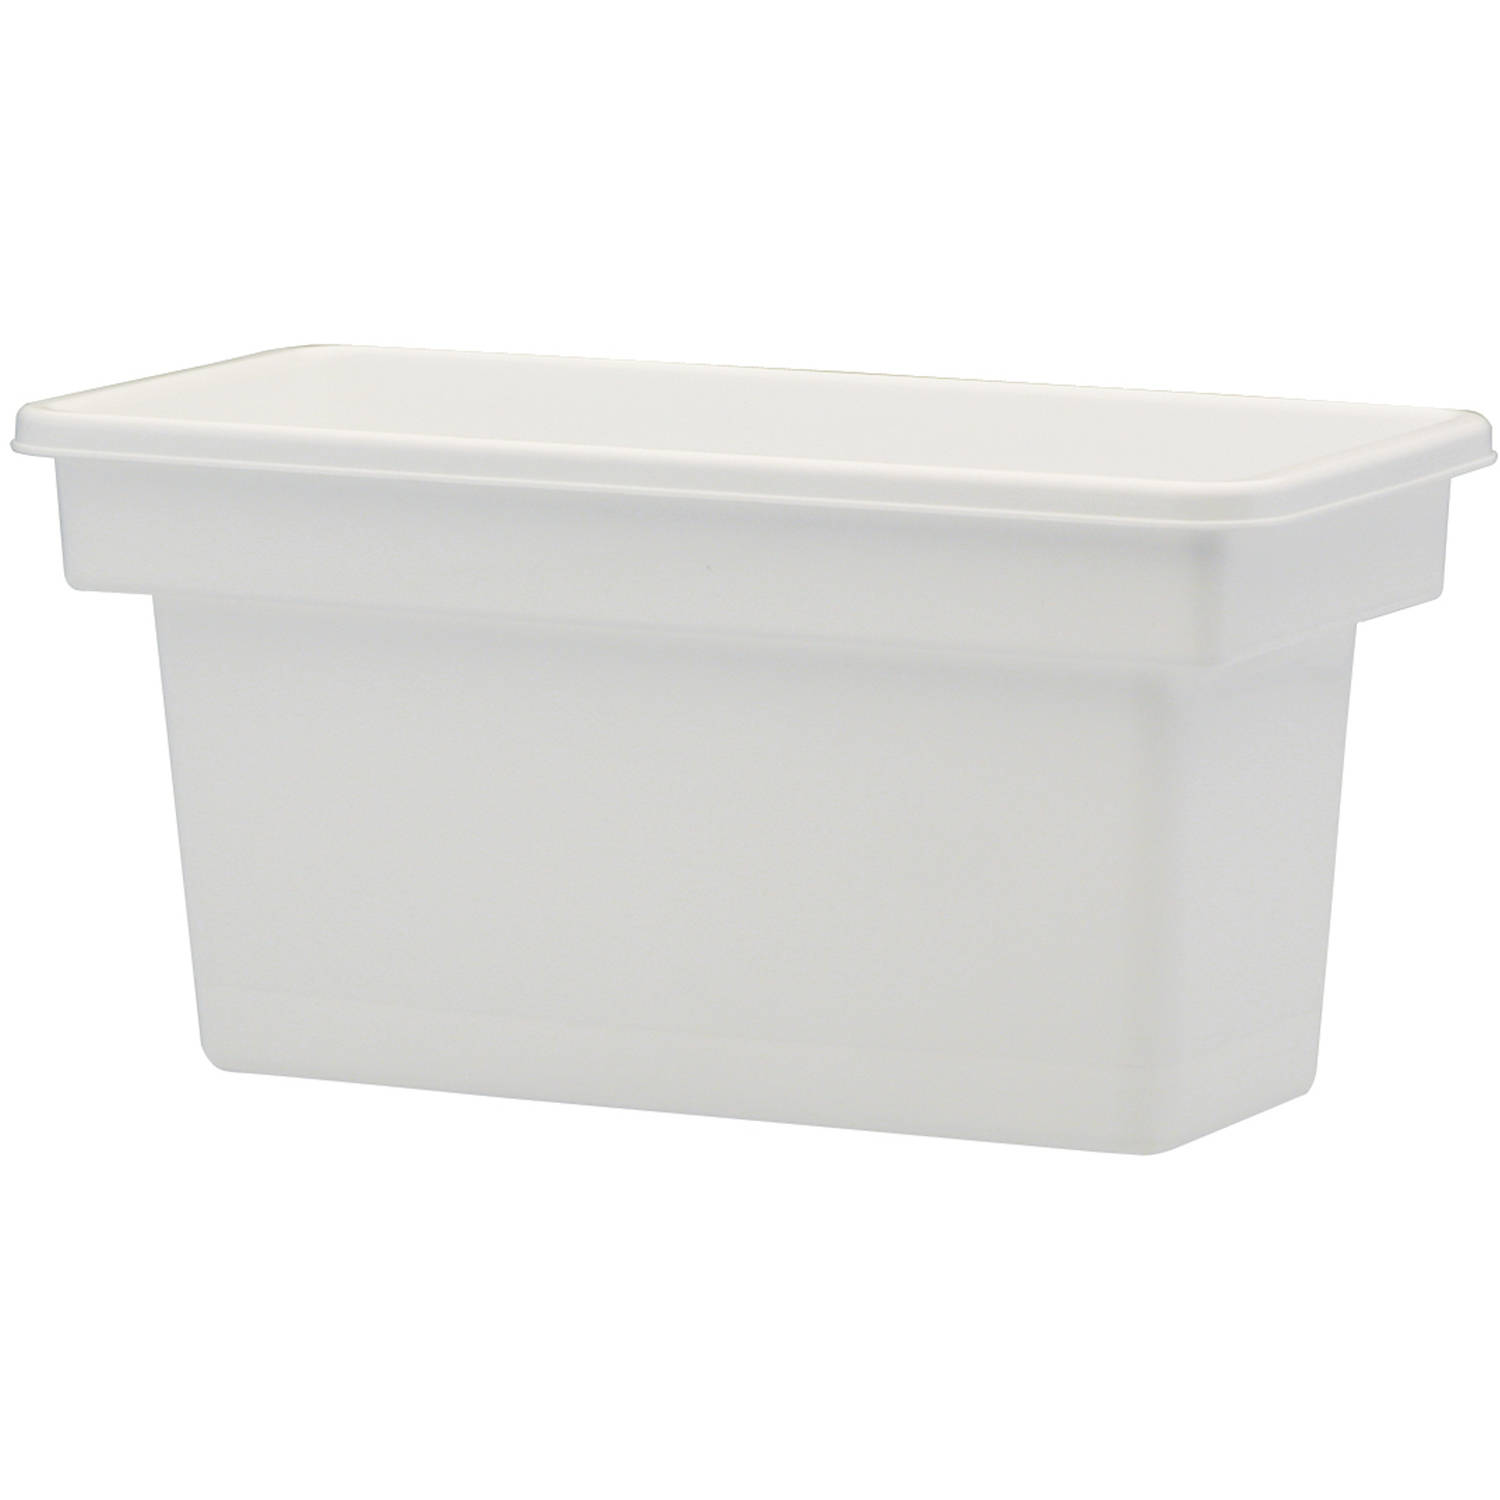 Image result for ice bin walmart